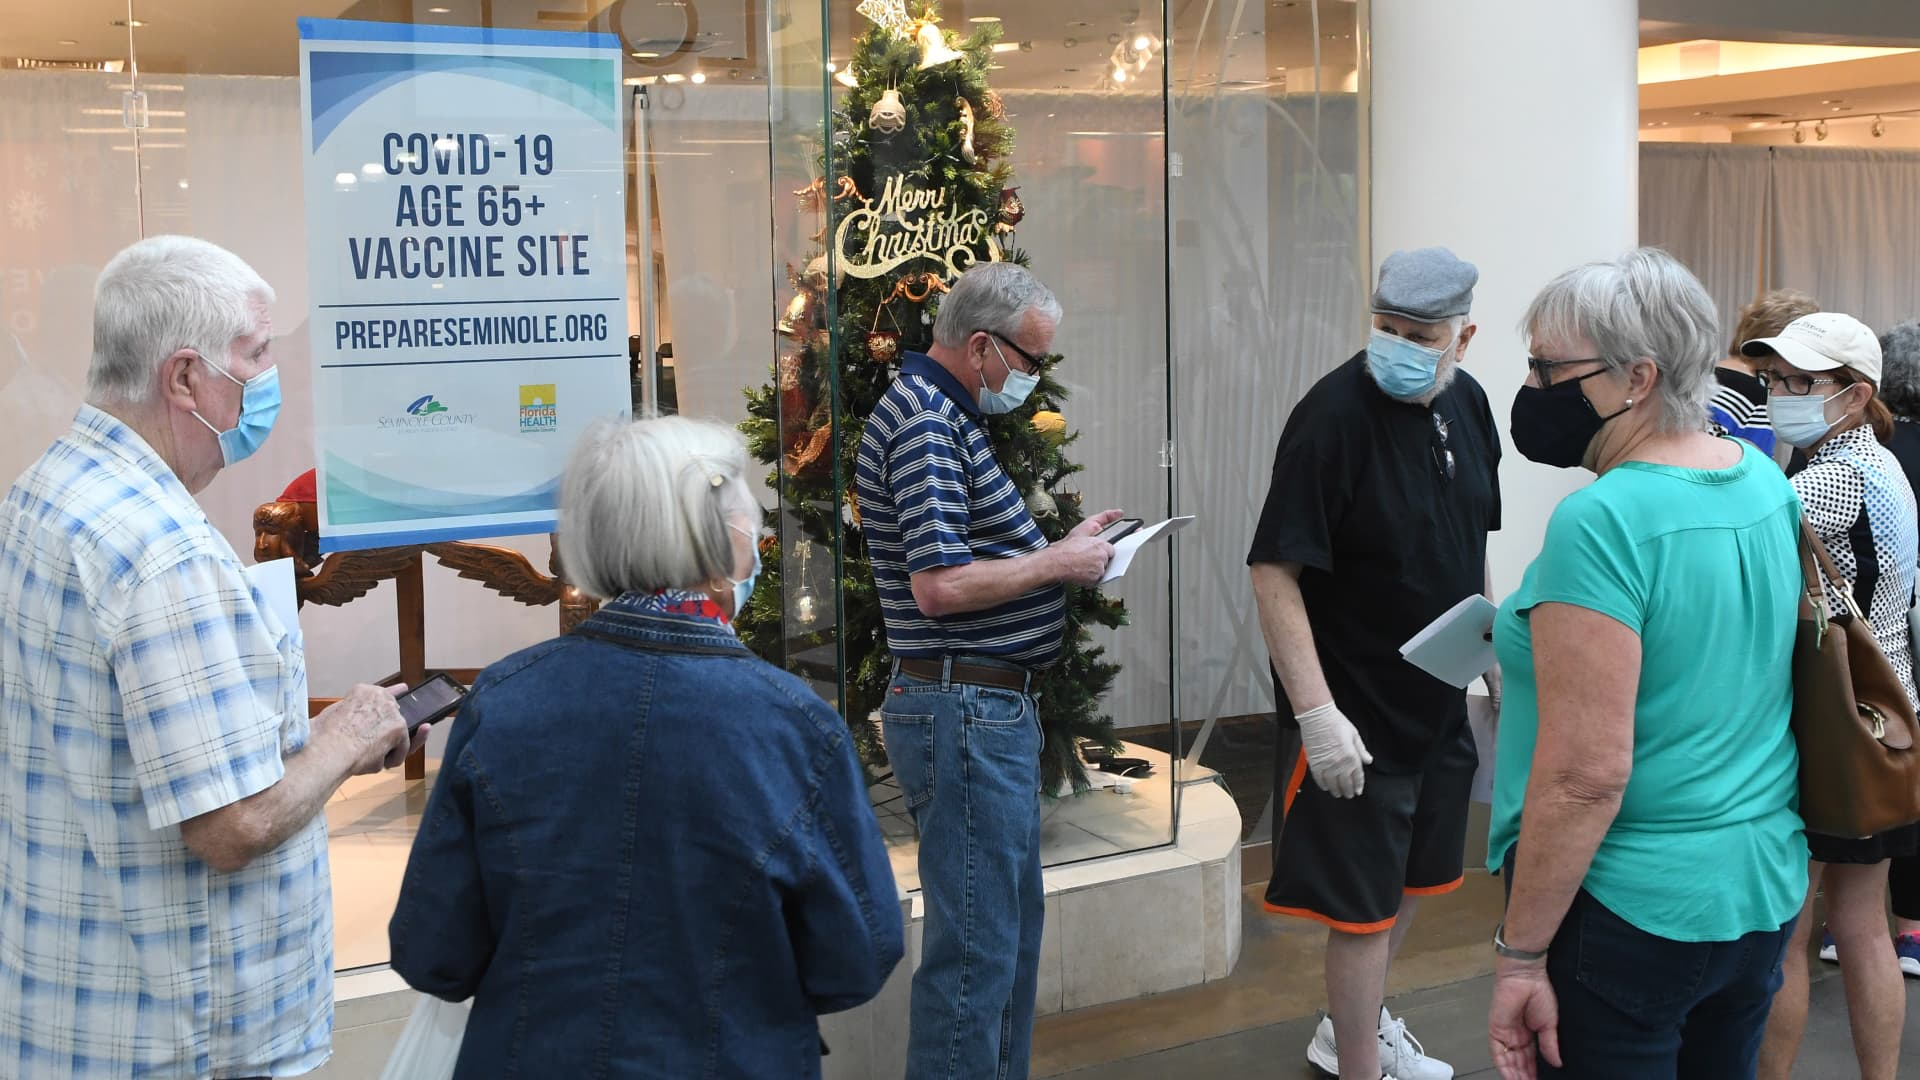 People wait in a line on New Year's Eve to receive a COVID-19 vaccination at a site for seniors in an unoccupied store at the Oviedo Mall. Governor Ron DeSantis ordered that Florida residents 65 and older be included in the first group to be offered coronavirus vaccinations, against the federal CDC recommendations.